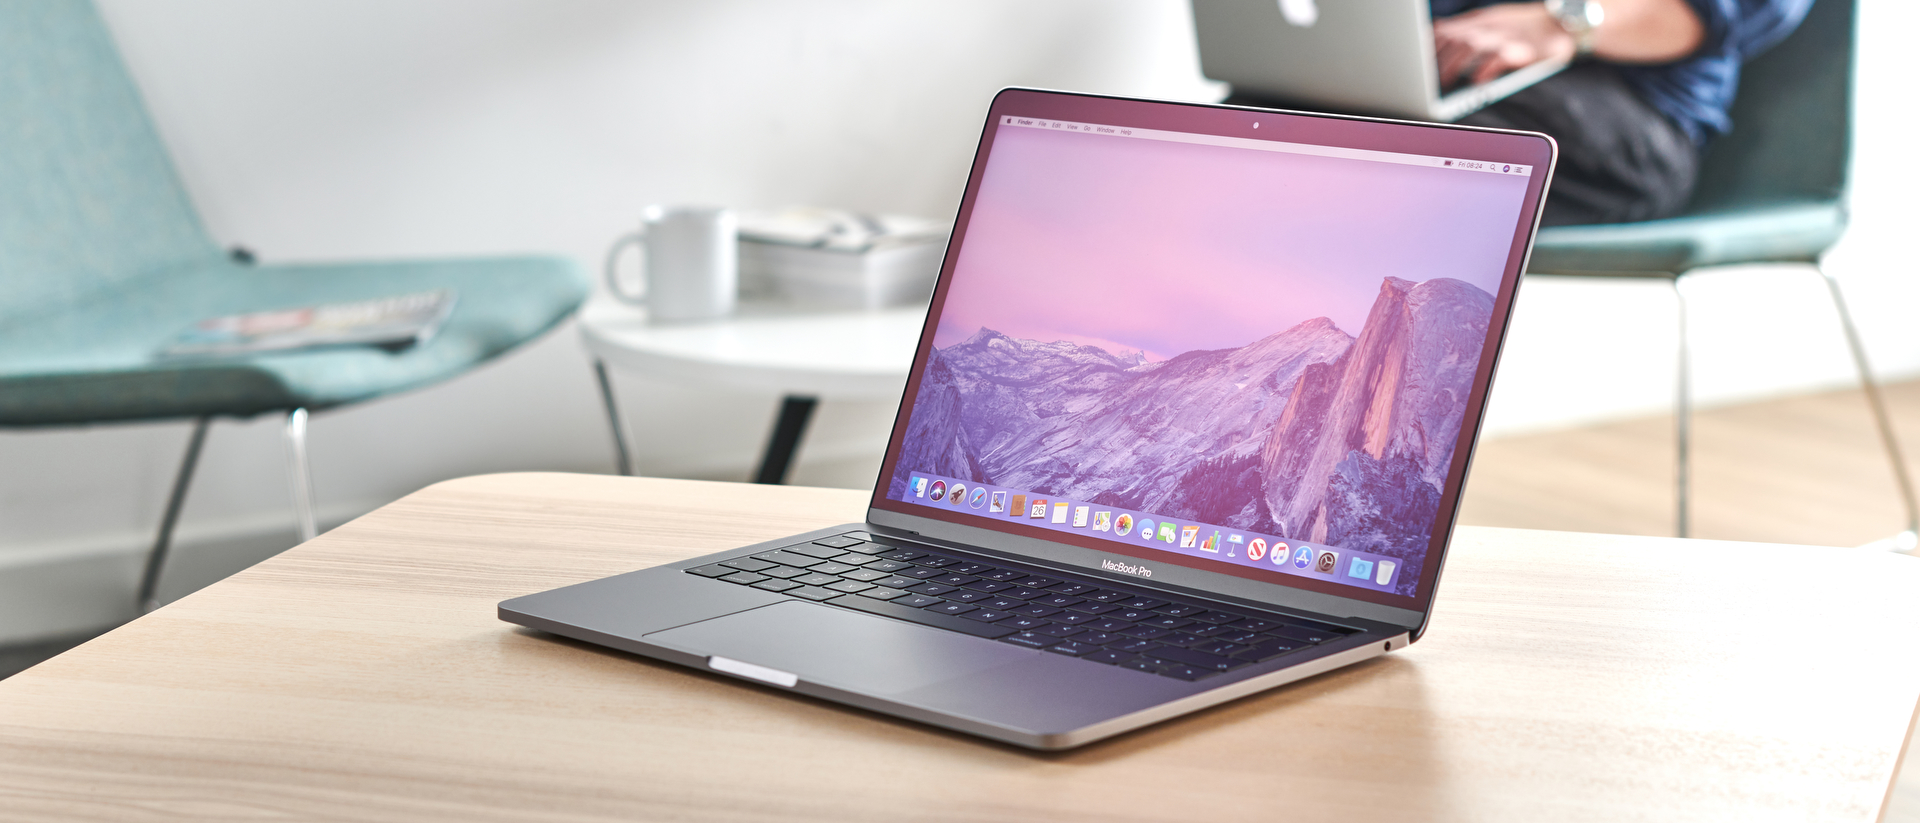 Best Laptop for Programming Students in 2021 - [Comparison ...